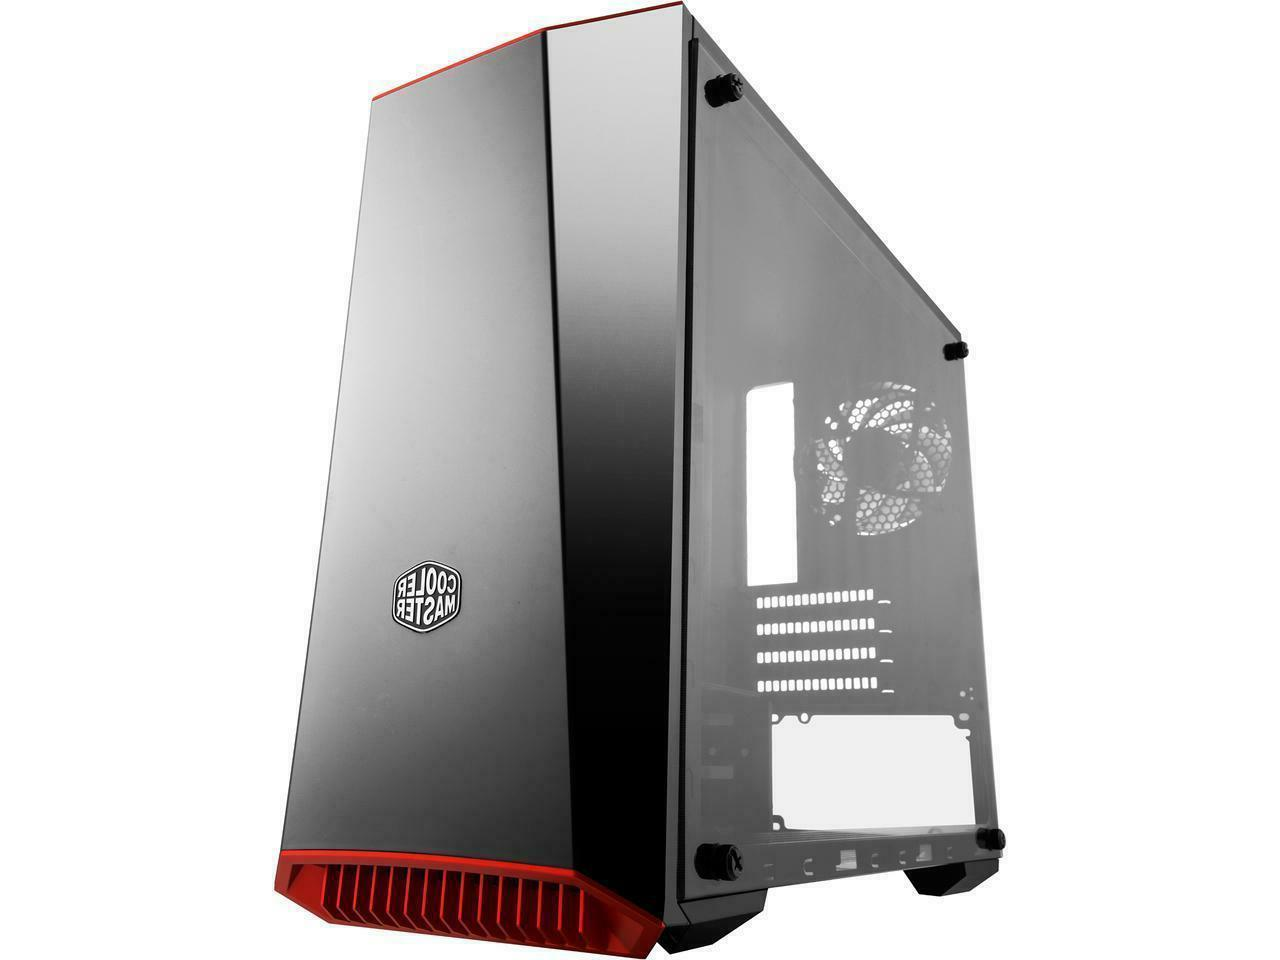 12 core gaming computer desktop pc tower